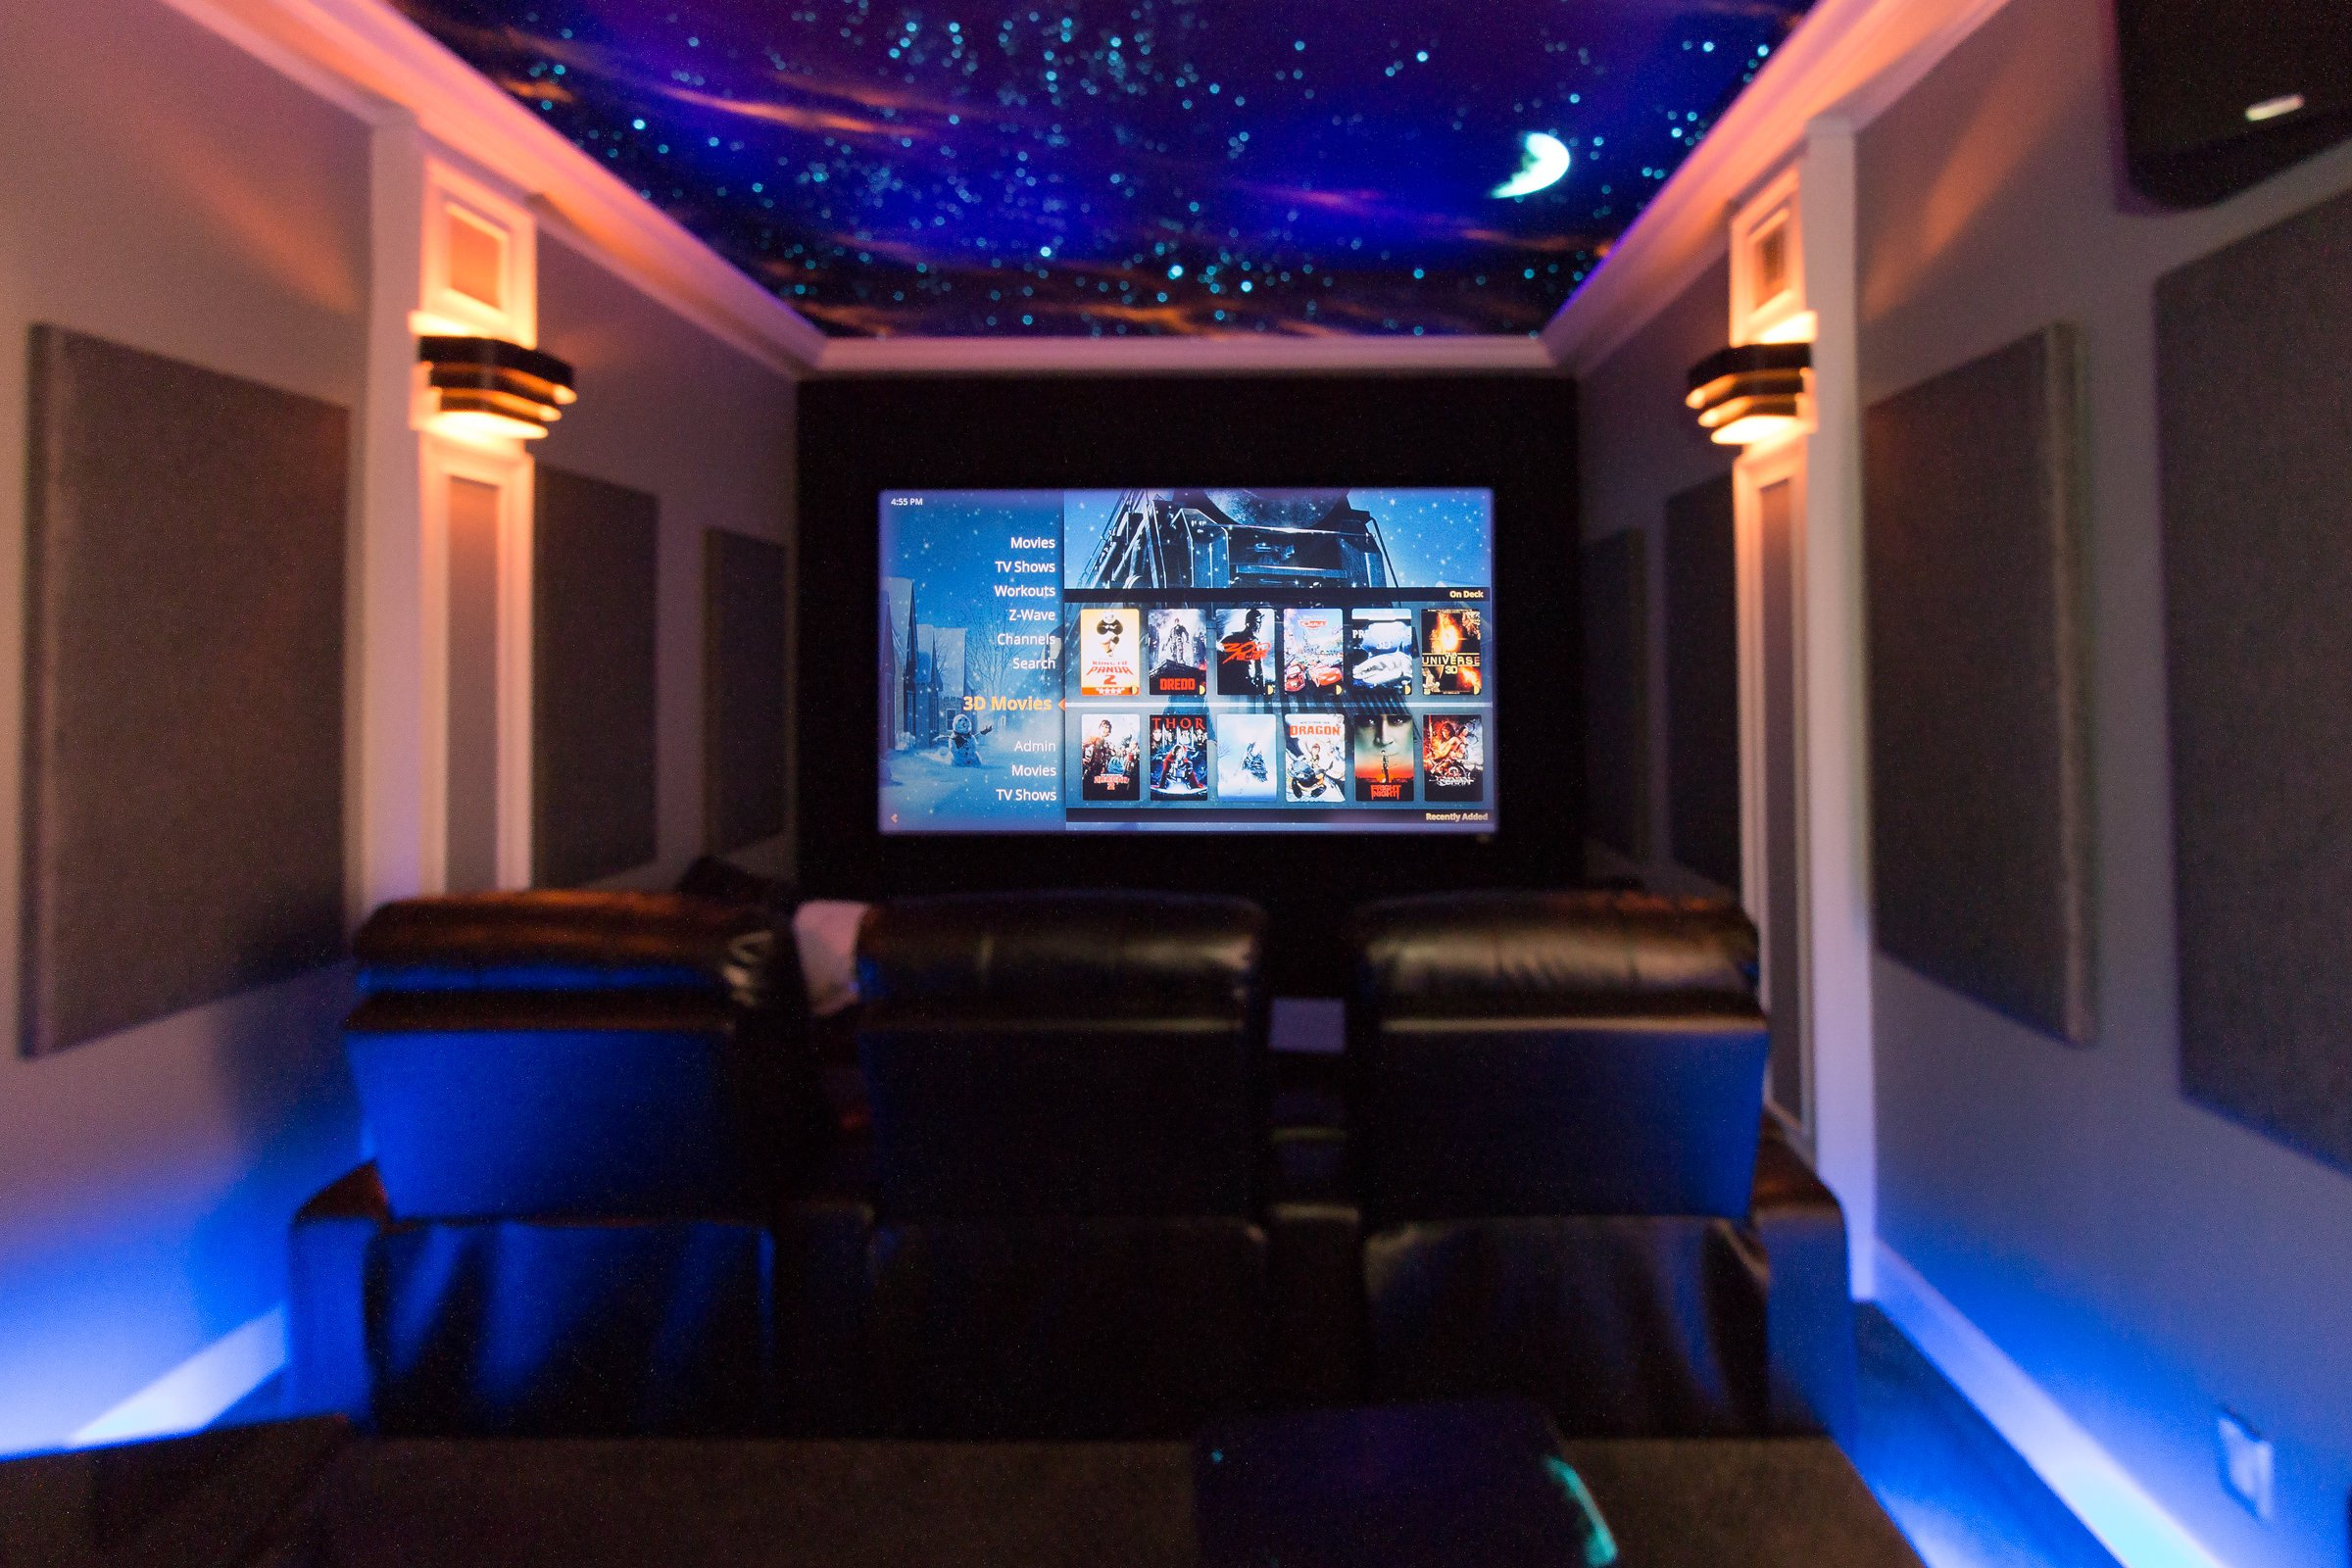 Whole-Home AV & Home Theater